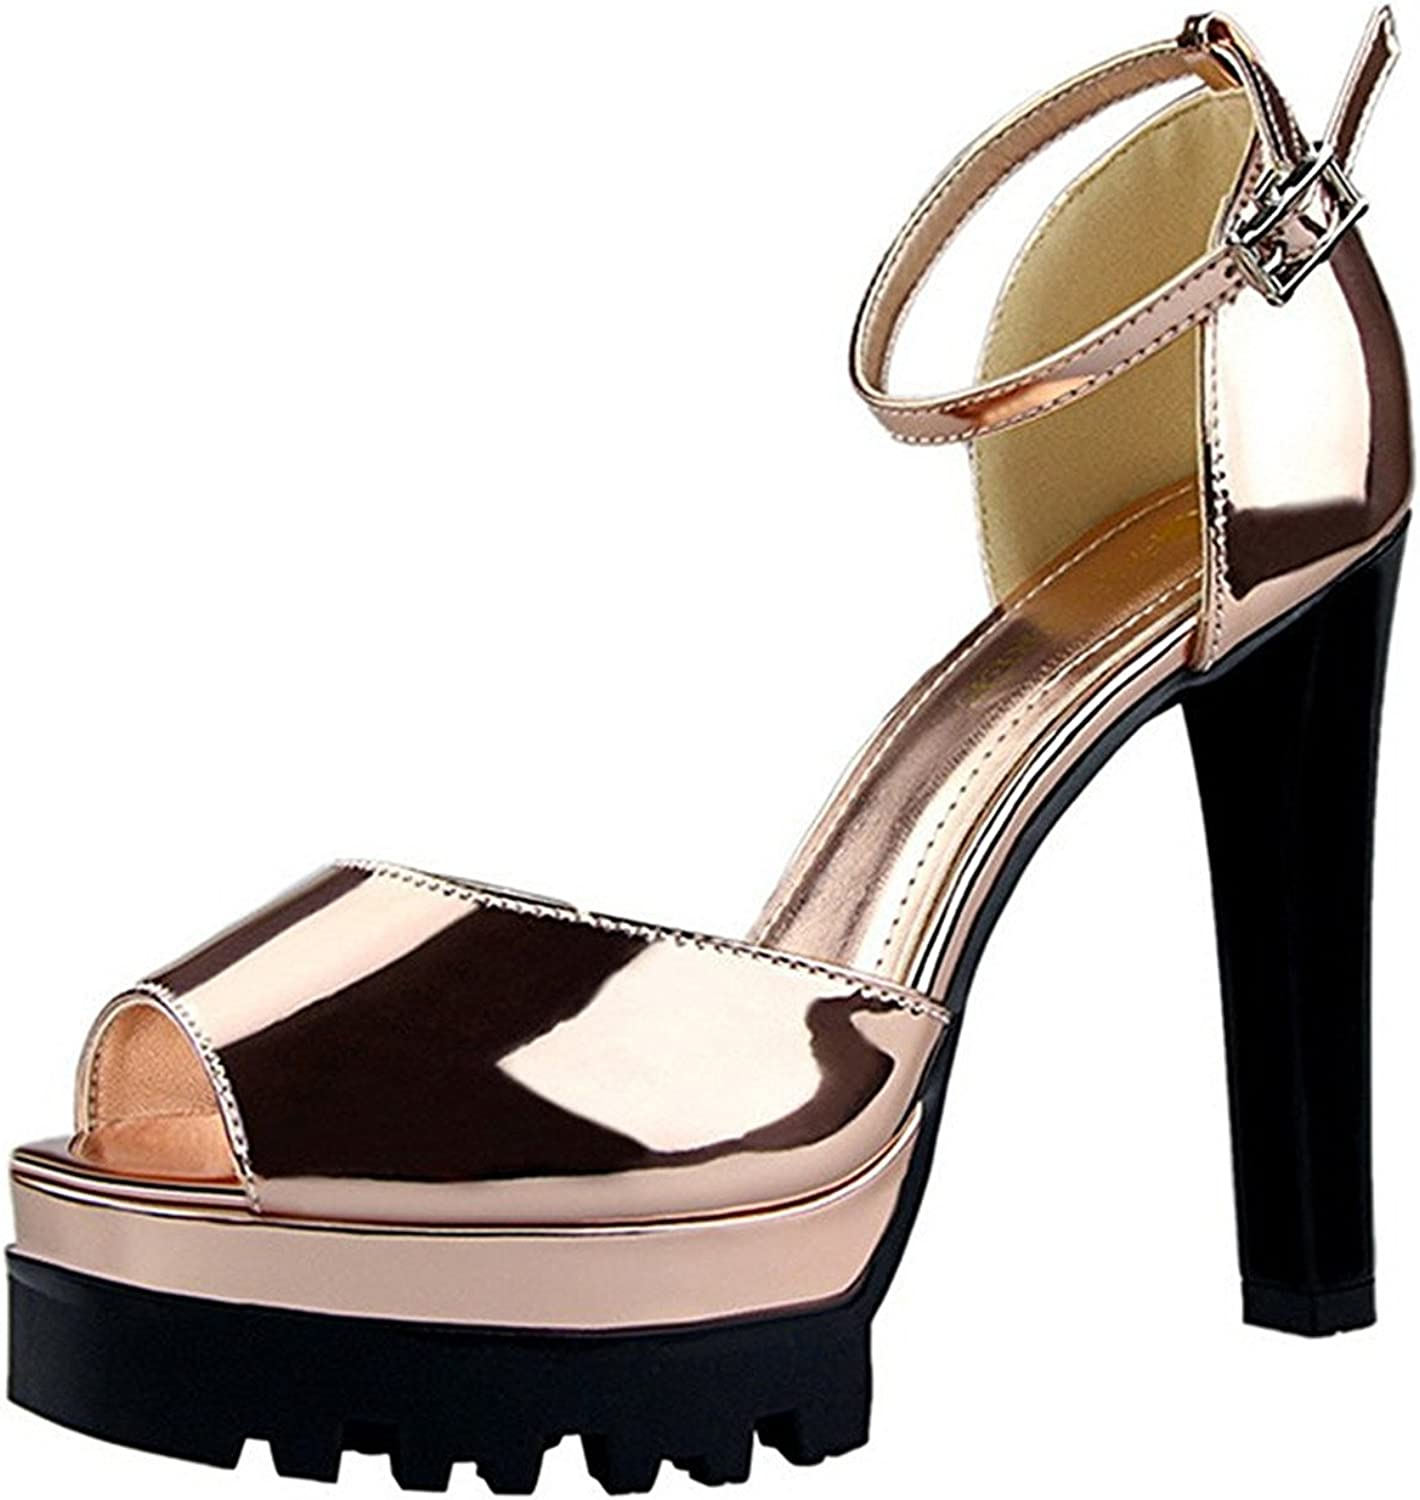 Colnsky British Style Pumps shoes Sexy Platform Women's High Heel shoes